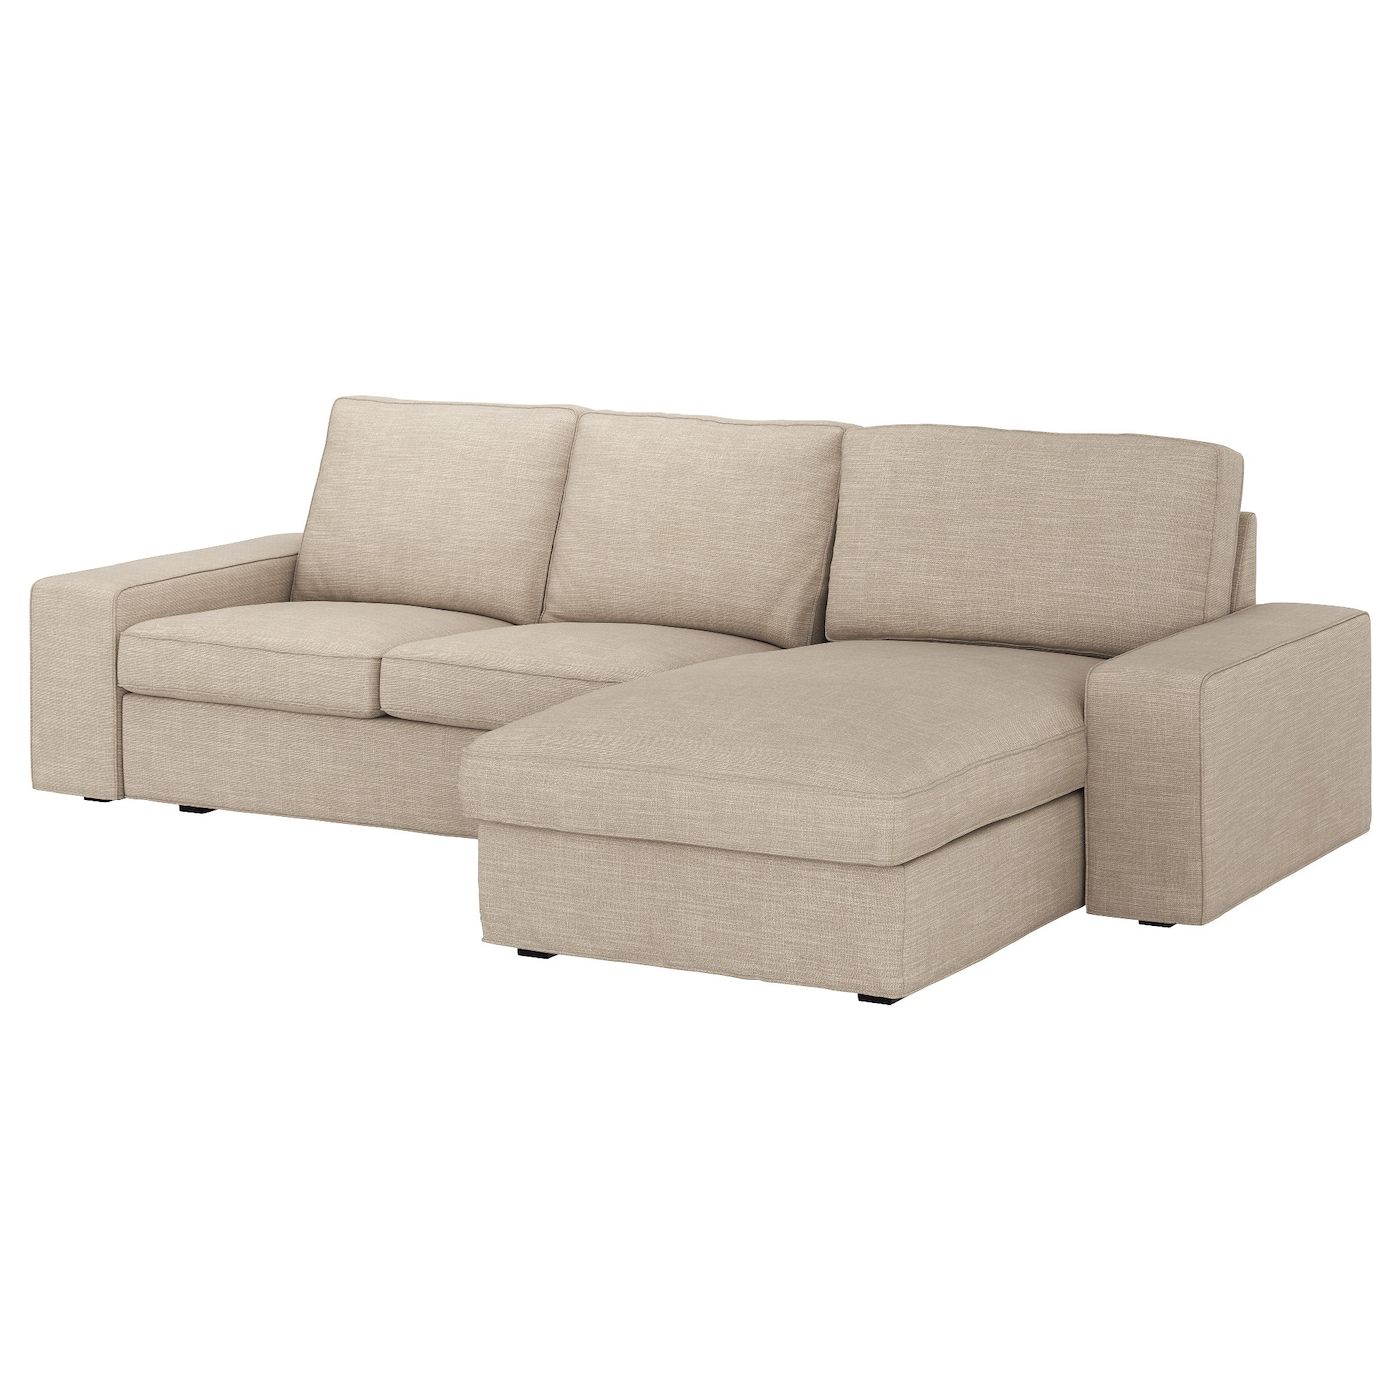 KIVIK - Sofa, with chaise, Orrsta red